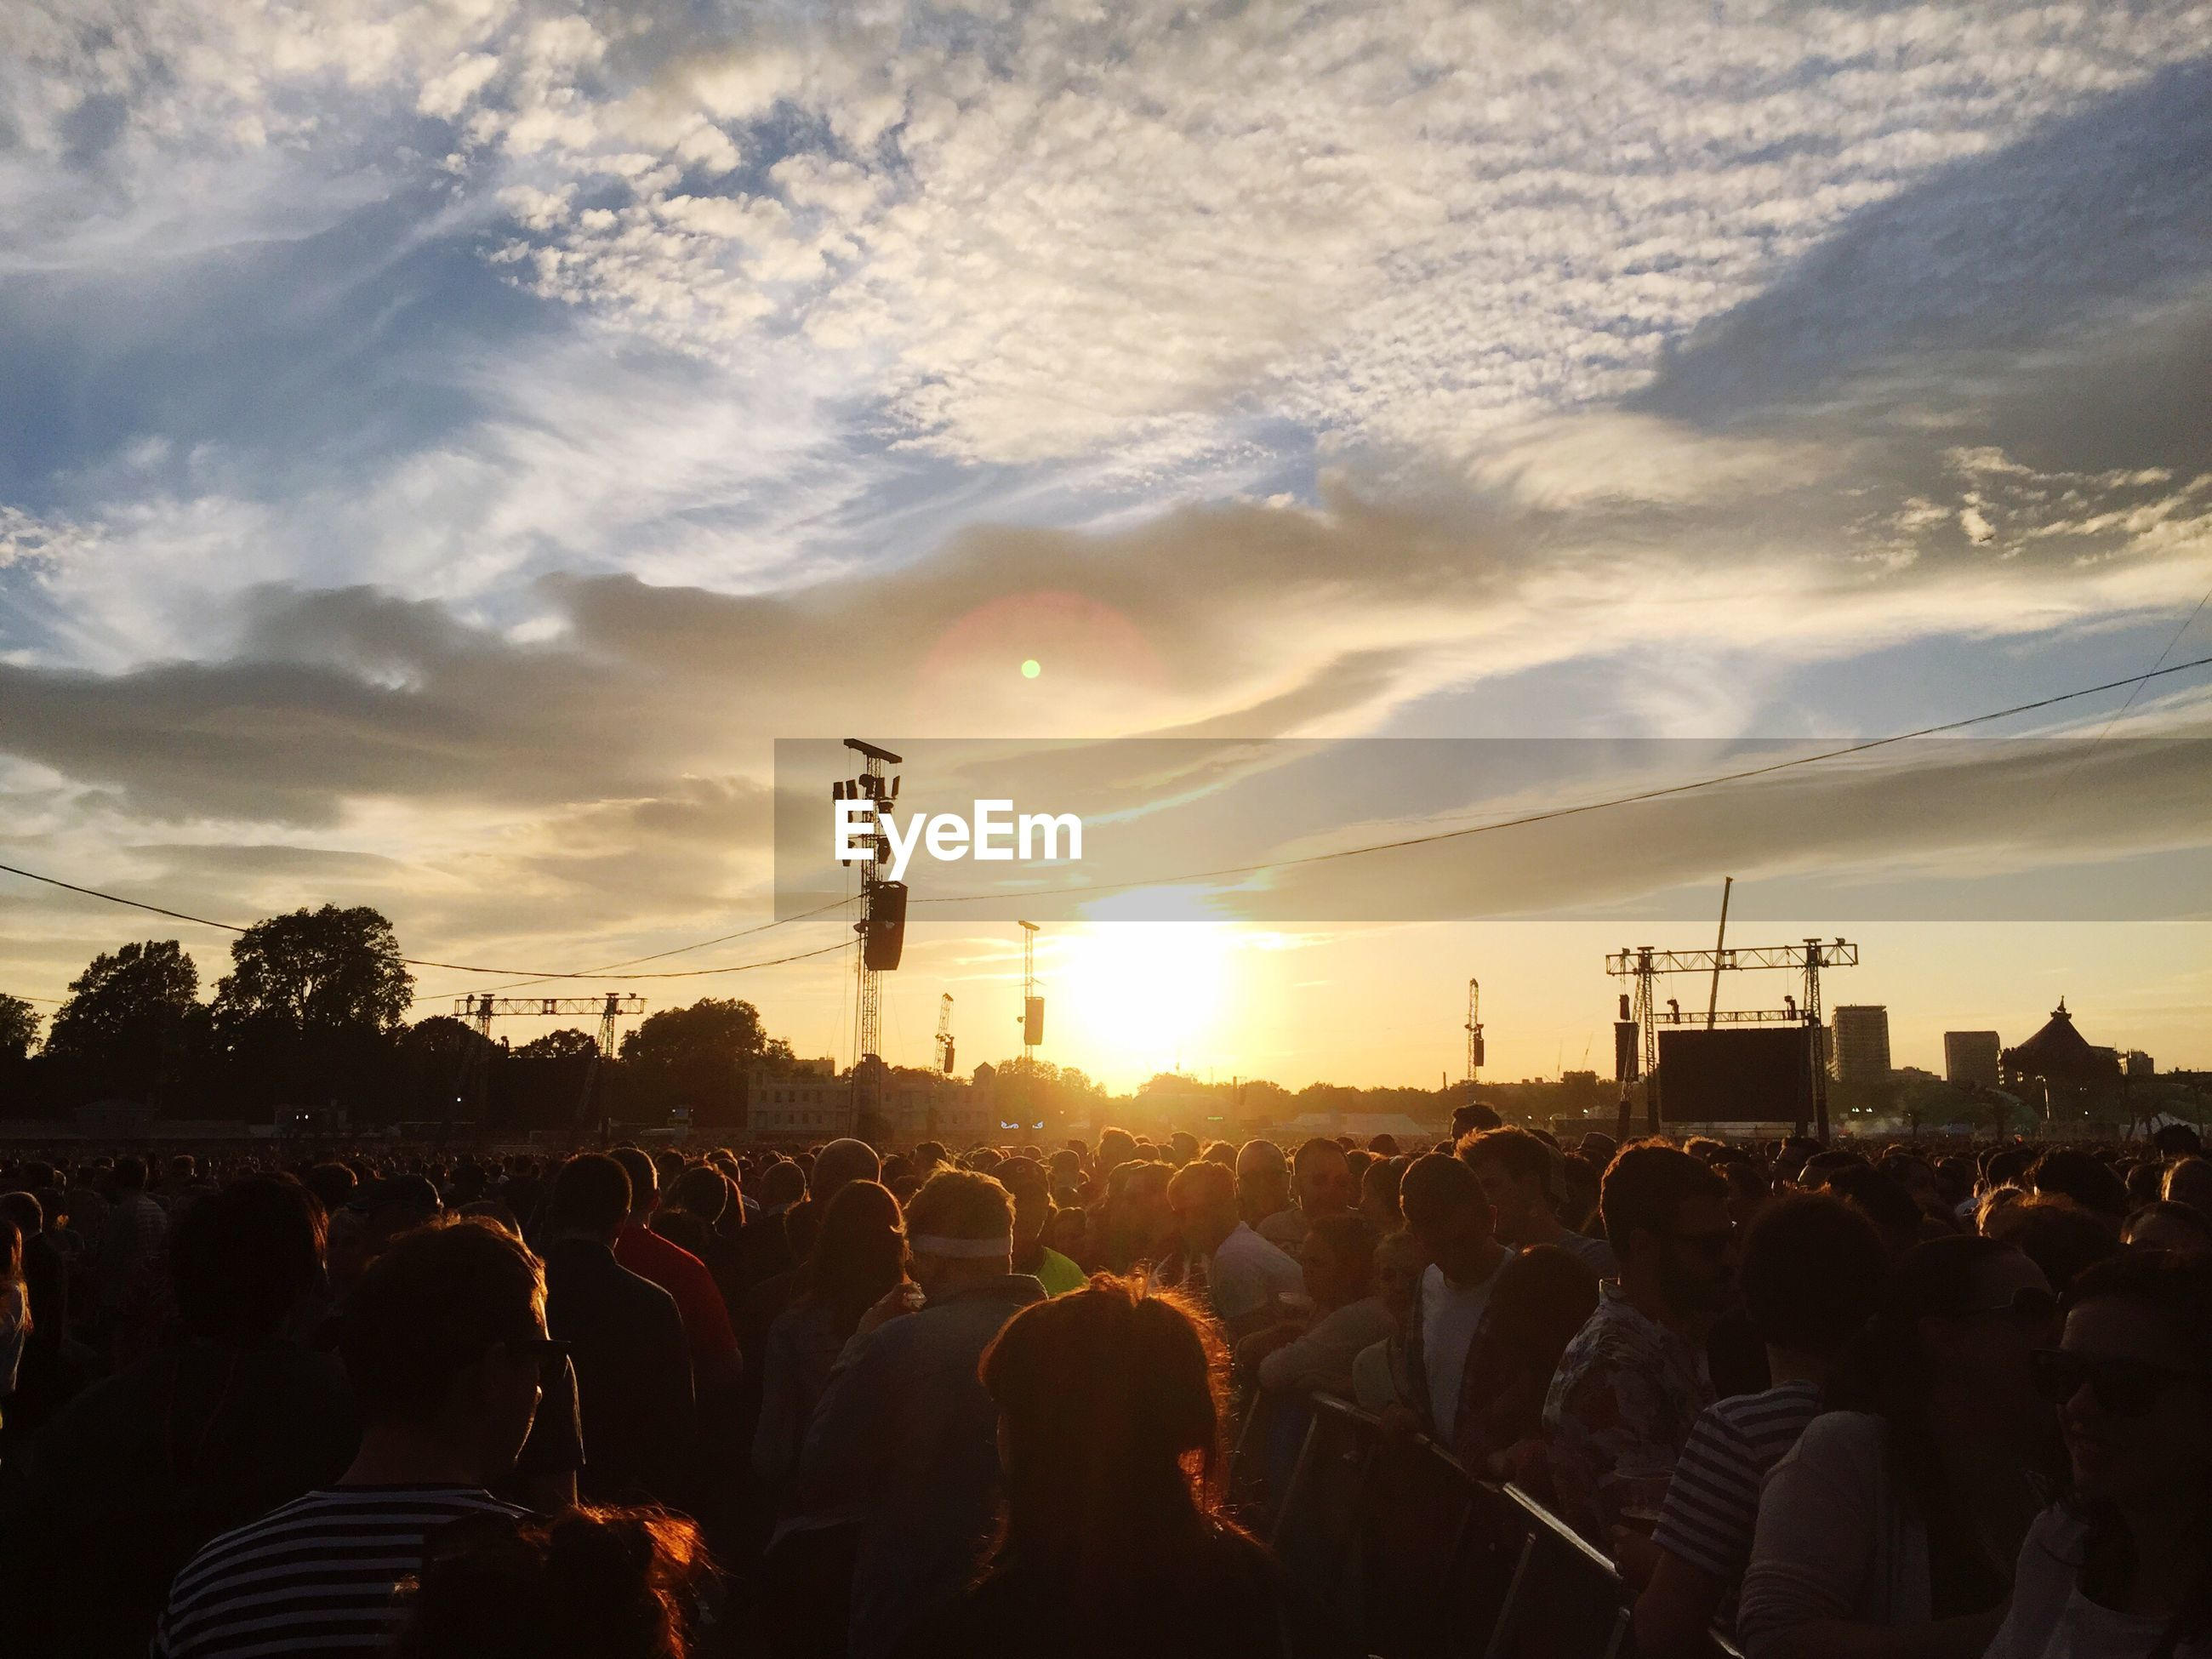 Crowd at music concert against sky during sunset